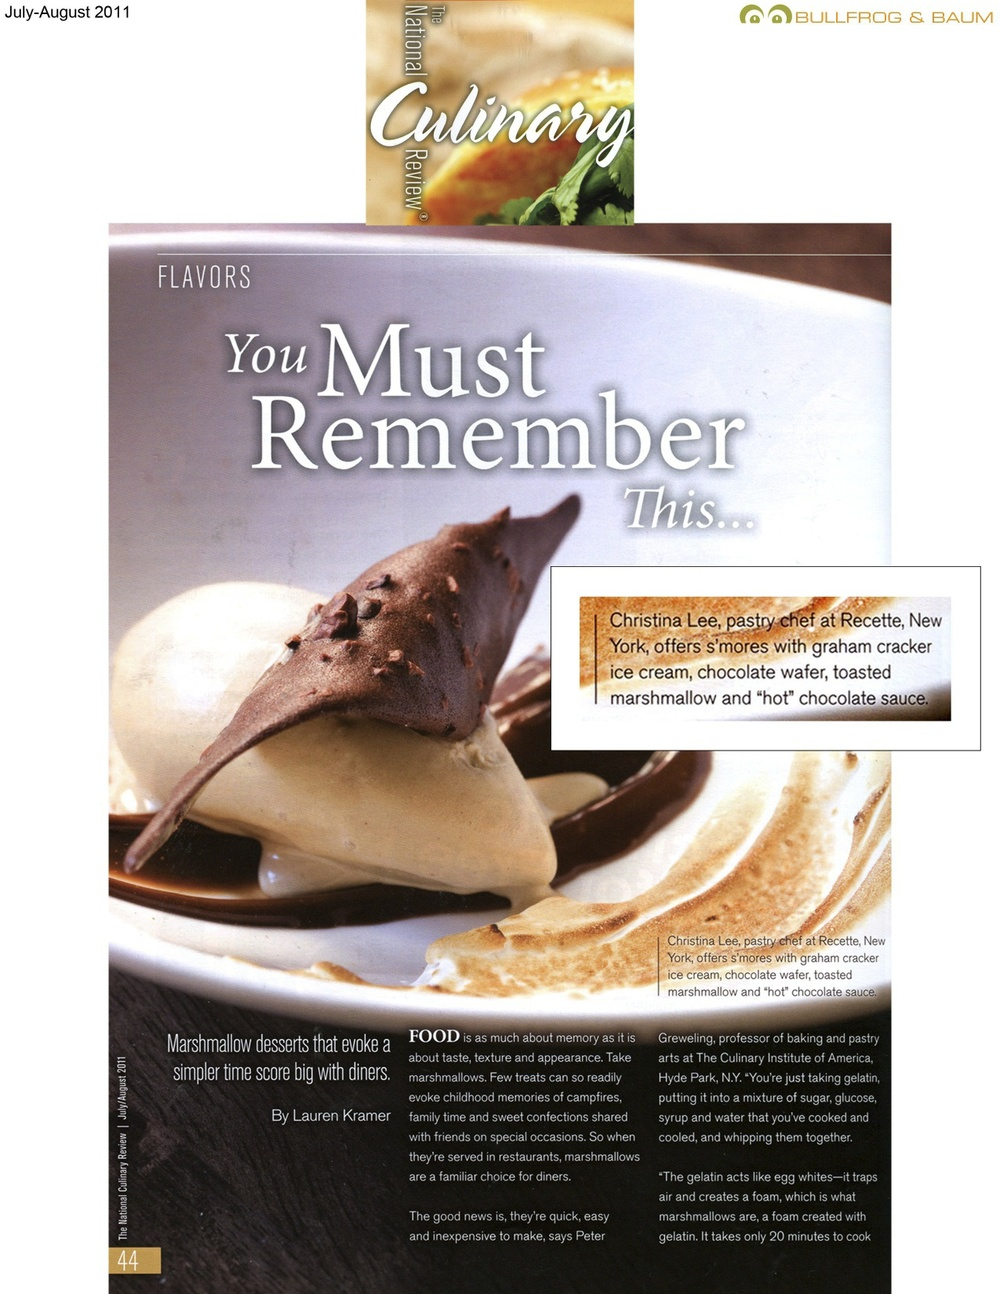 REC_NATIONAL CULINARY REVIEW Magazine_July-Aug_11.jpg